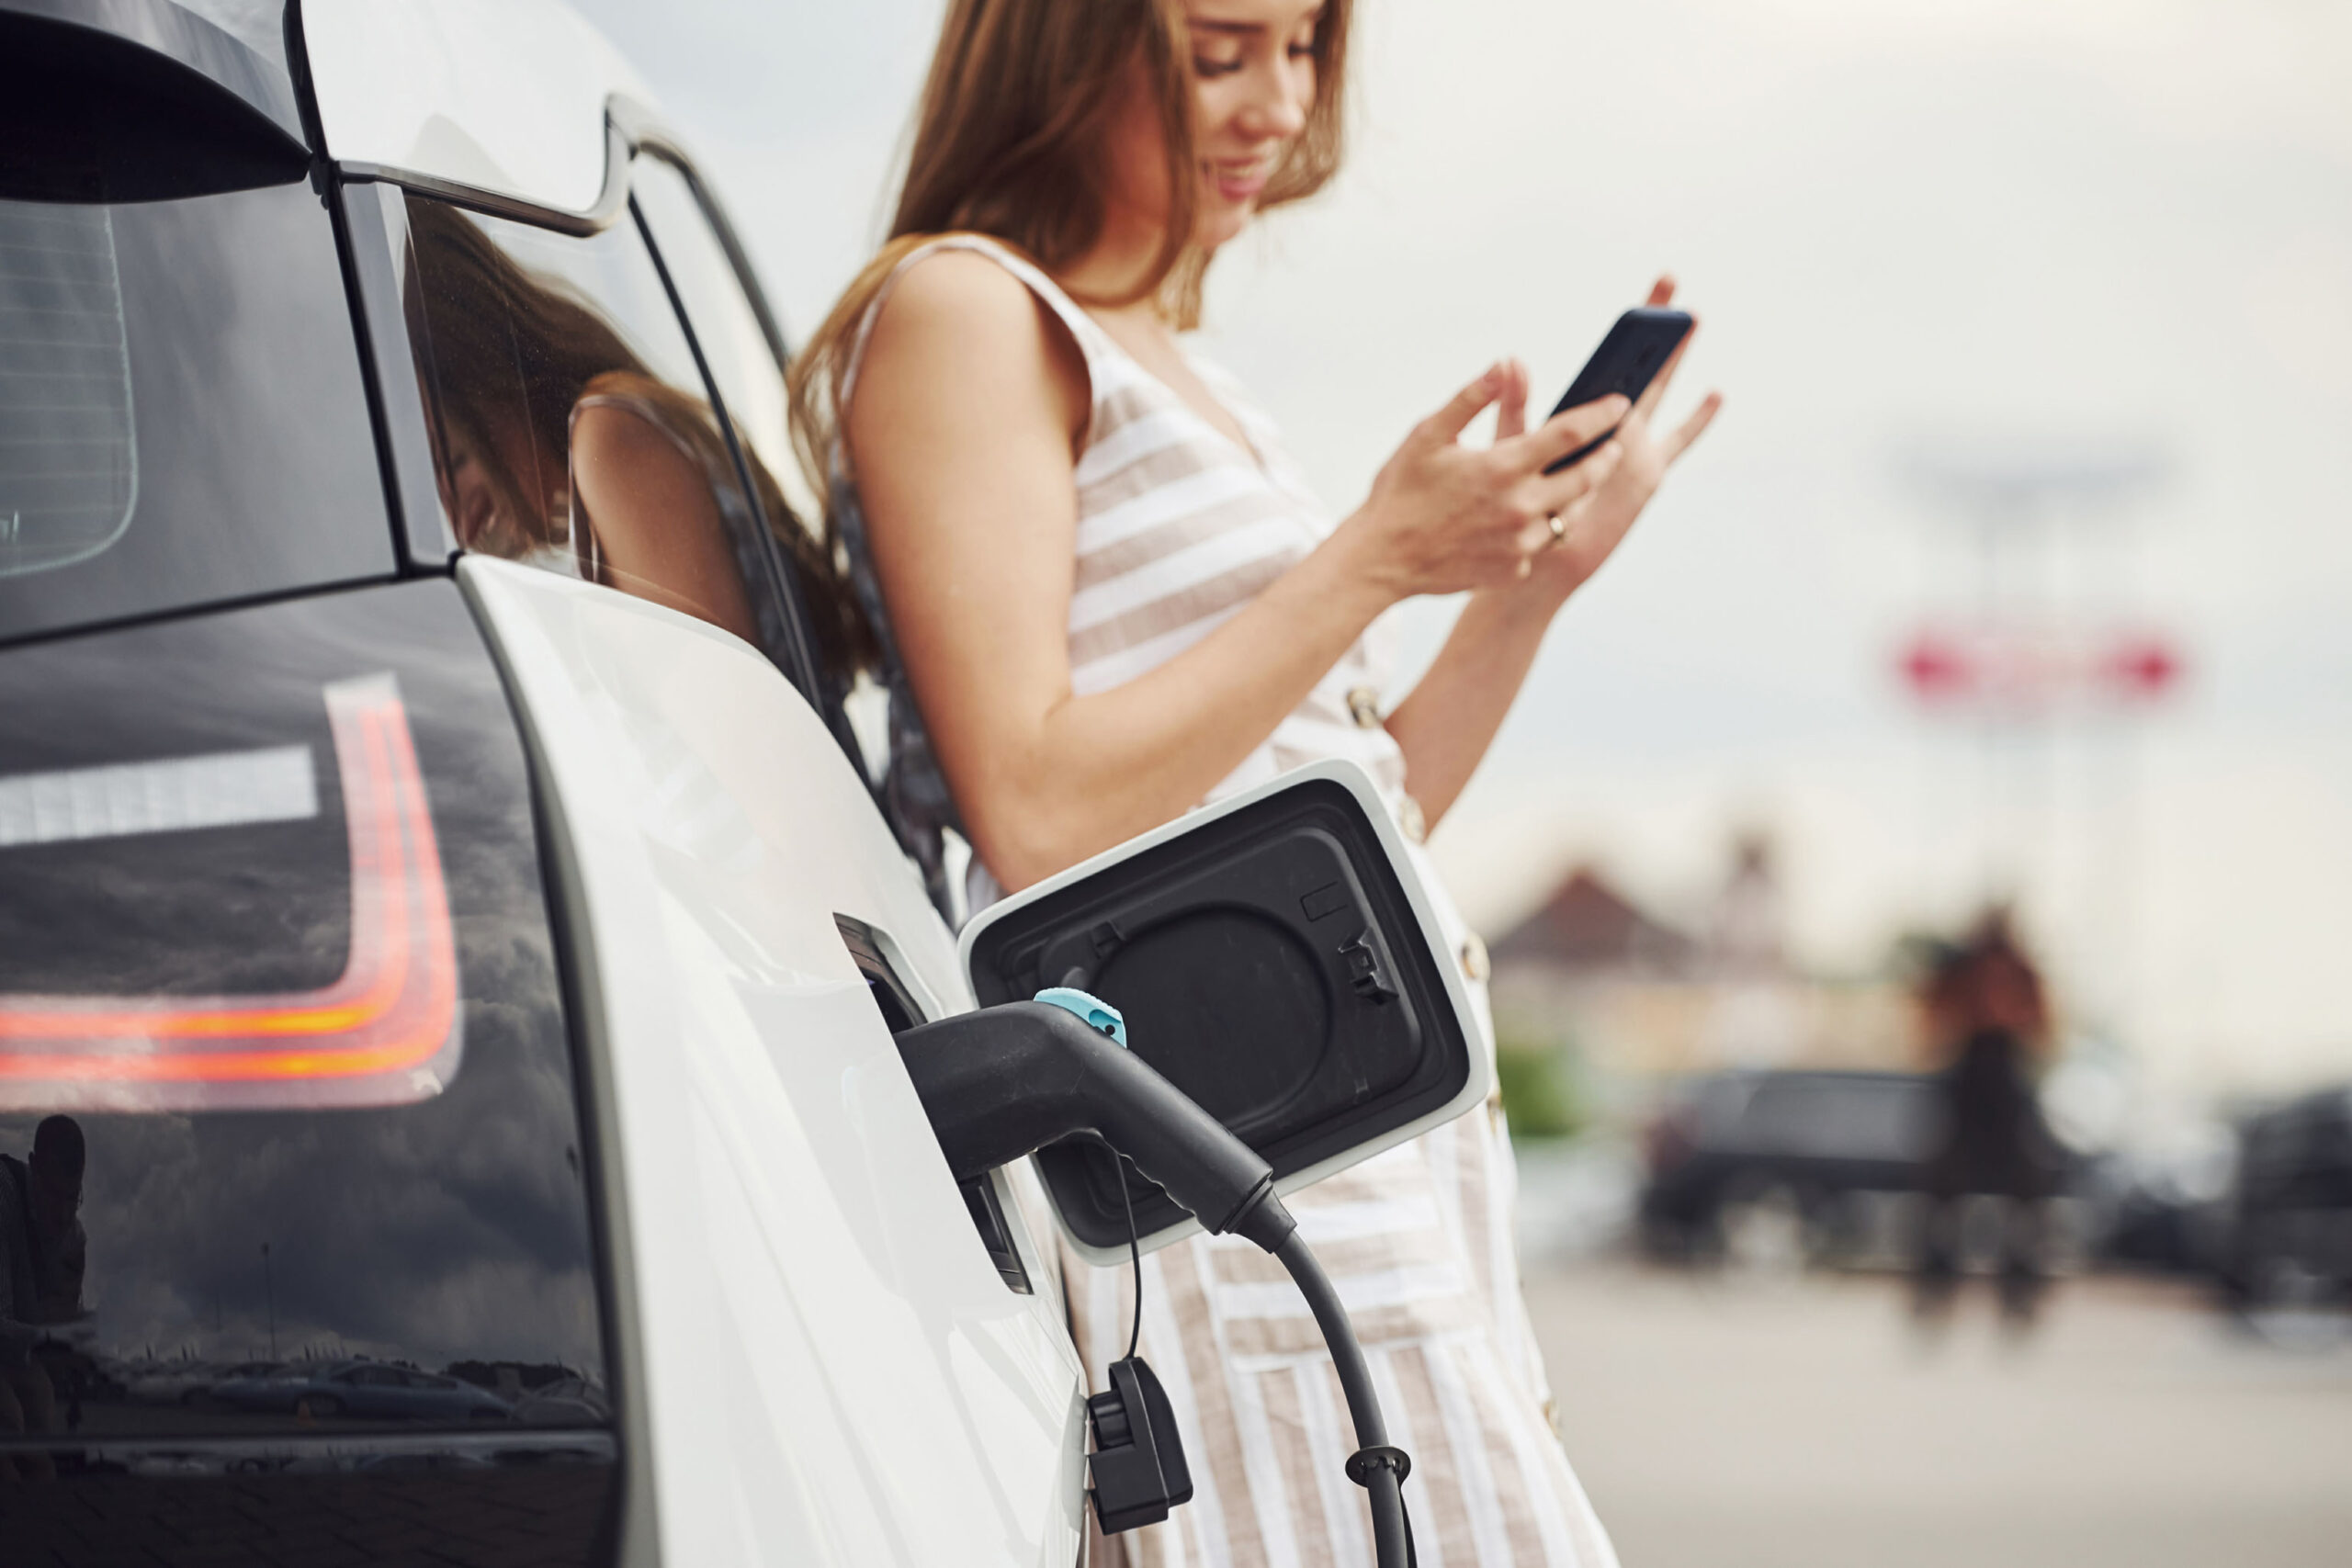 A NEW MODEL FOR SERVICE DELIVERY IN EMOBILITY